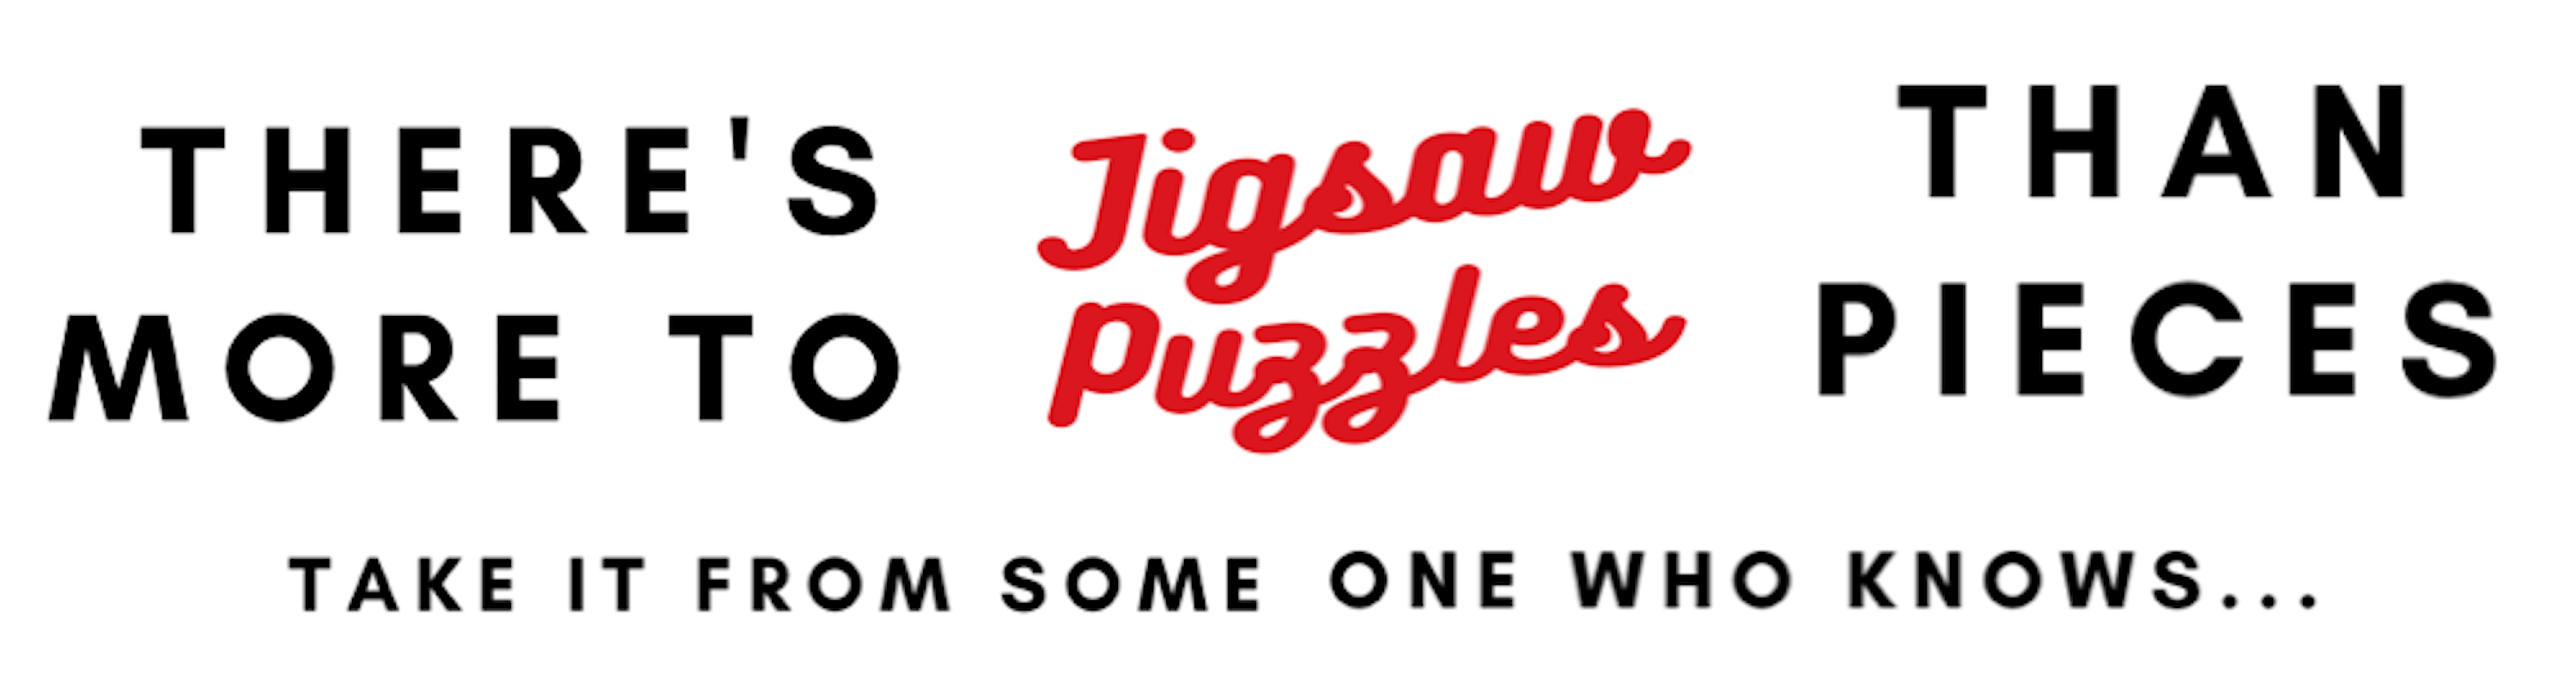 There's More To Jigsaw Puzzles Than Pieces Book